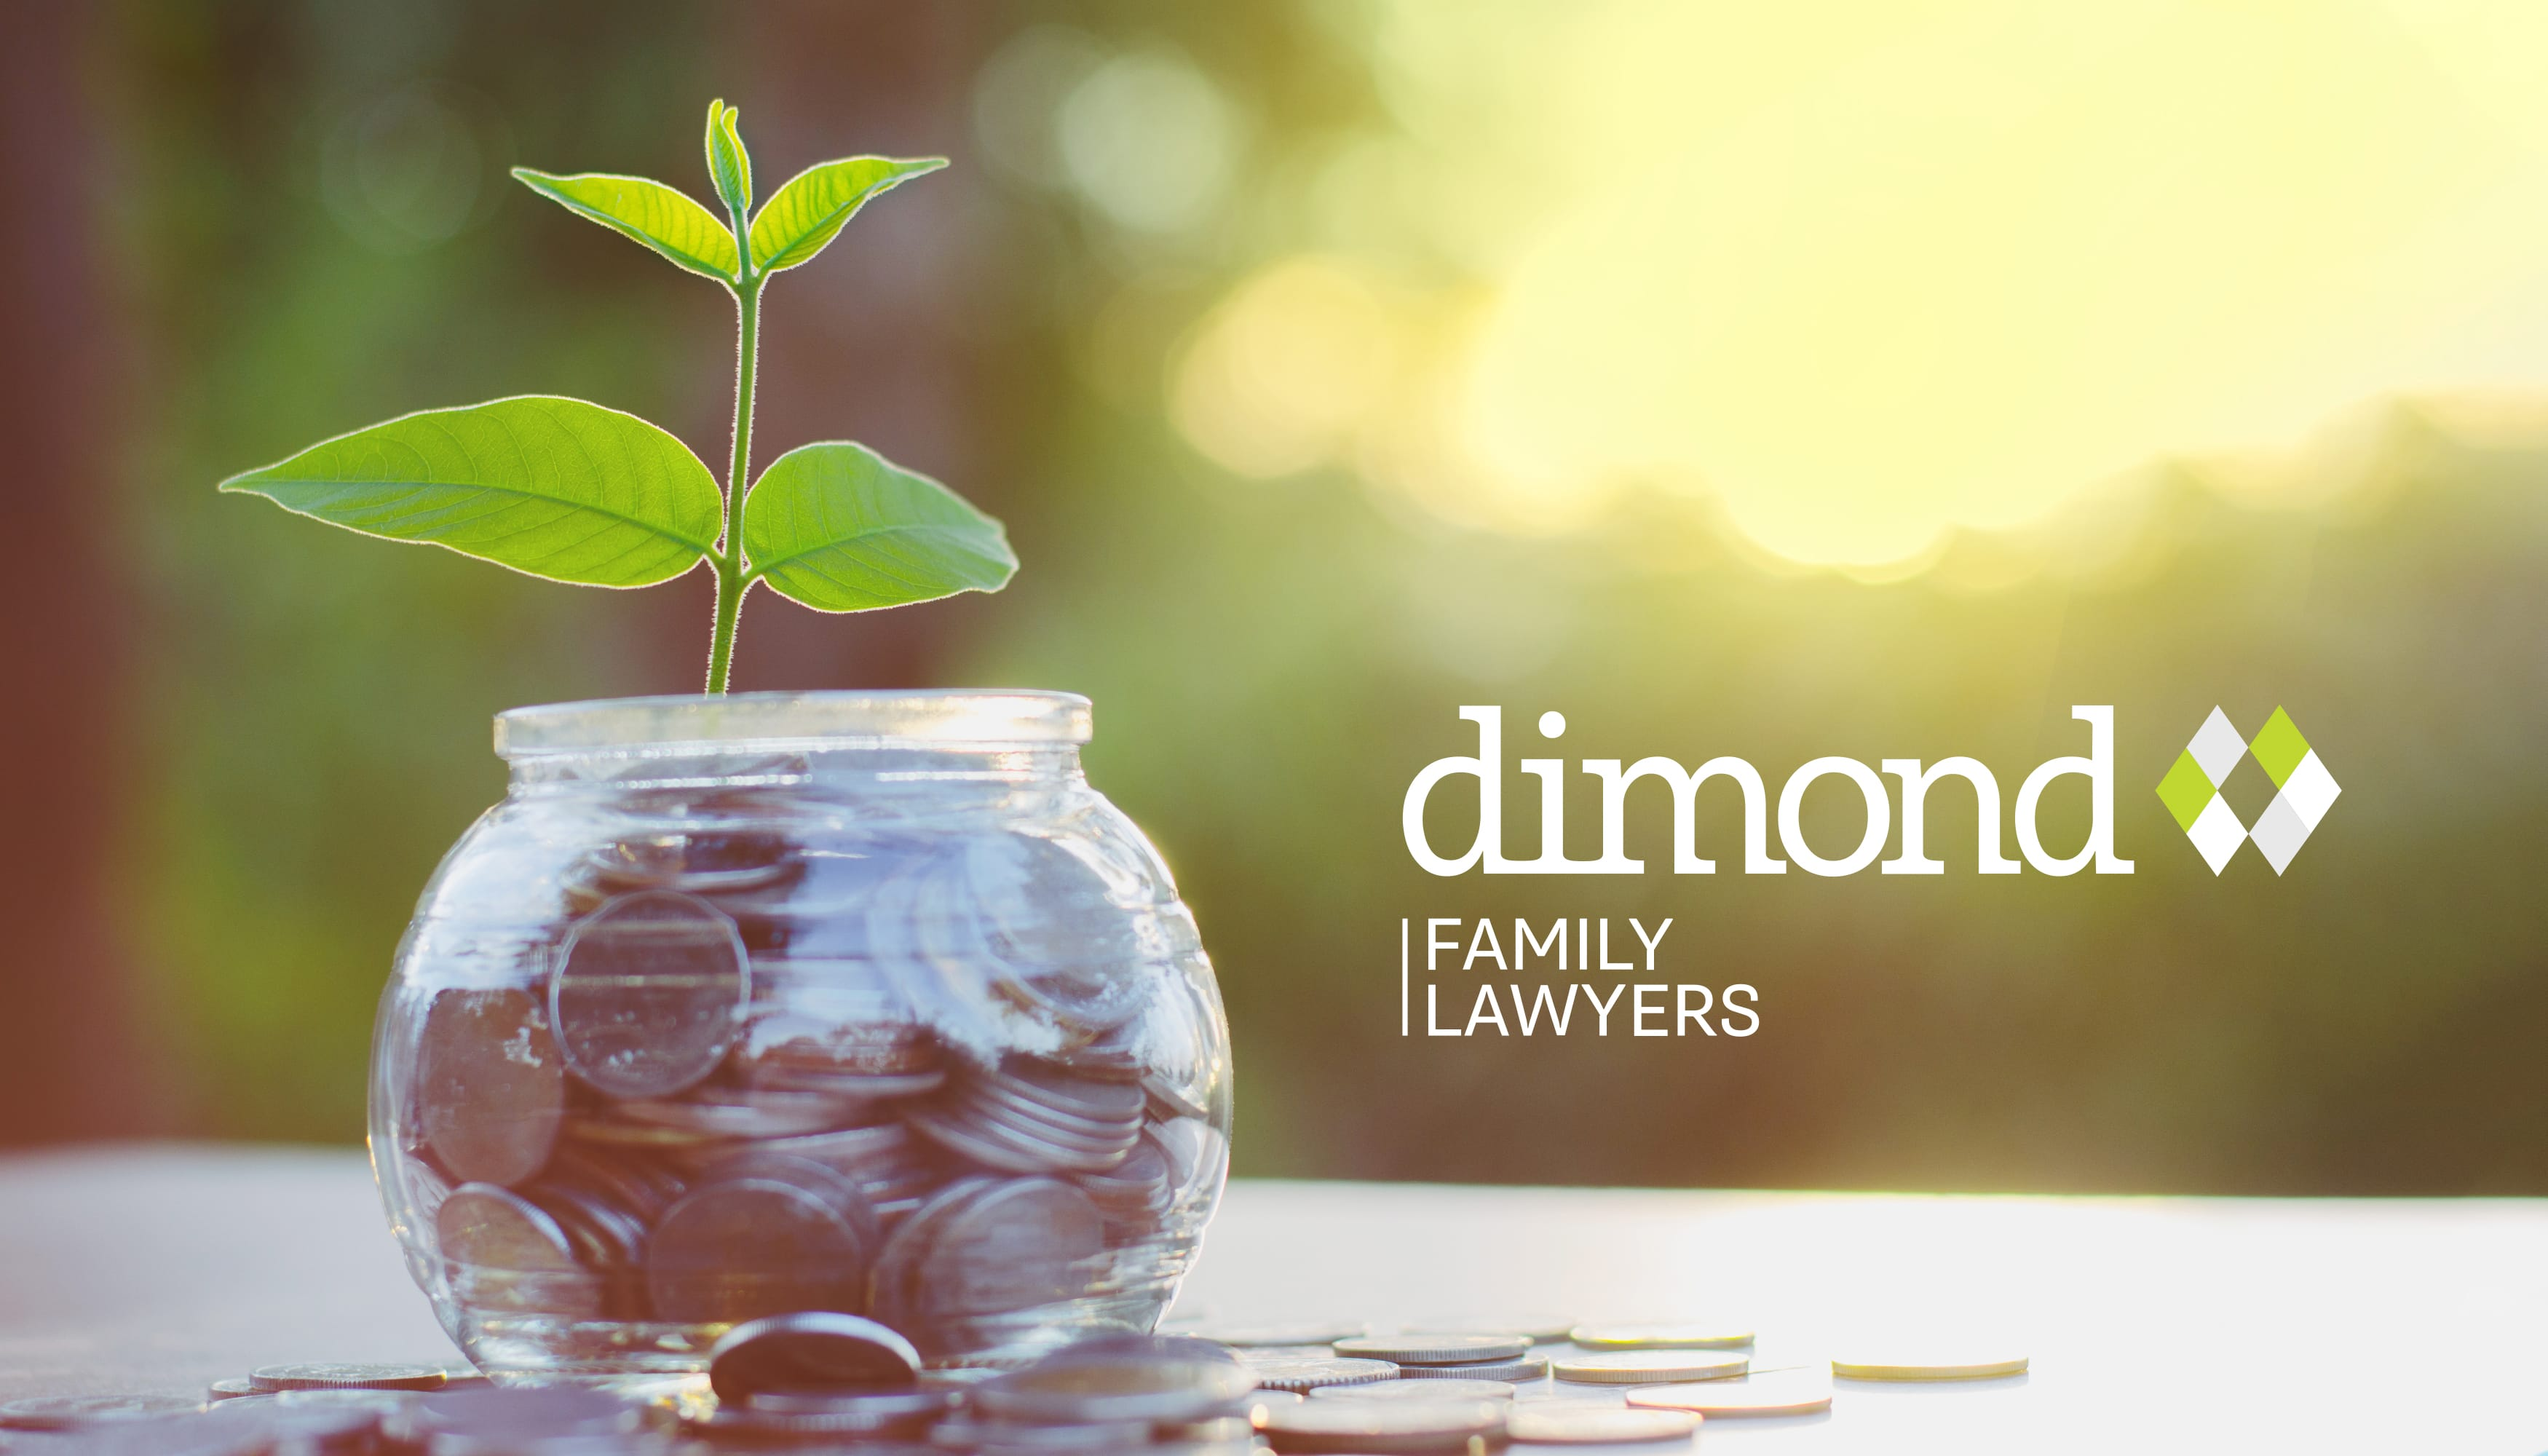 Dimond Family Lawyers | Pixel Whip Creative